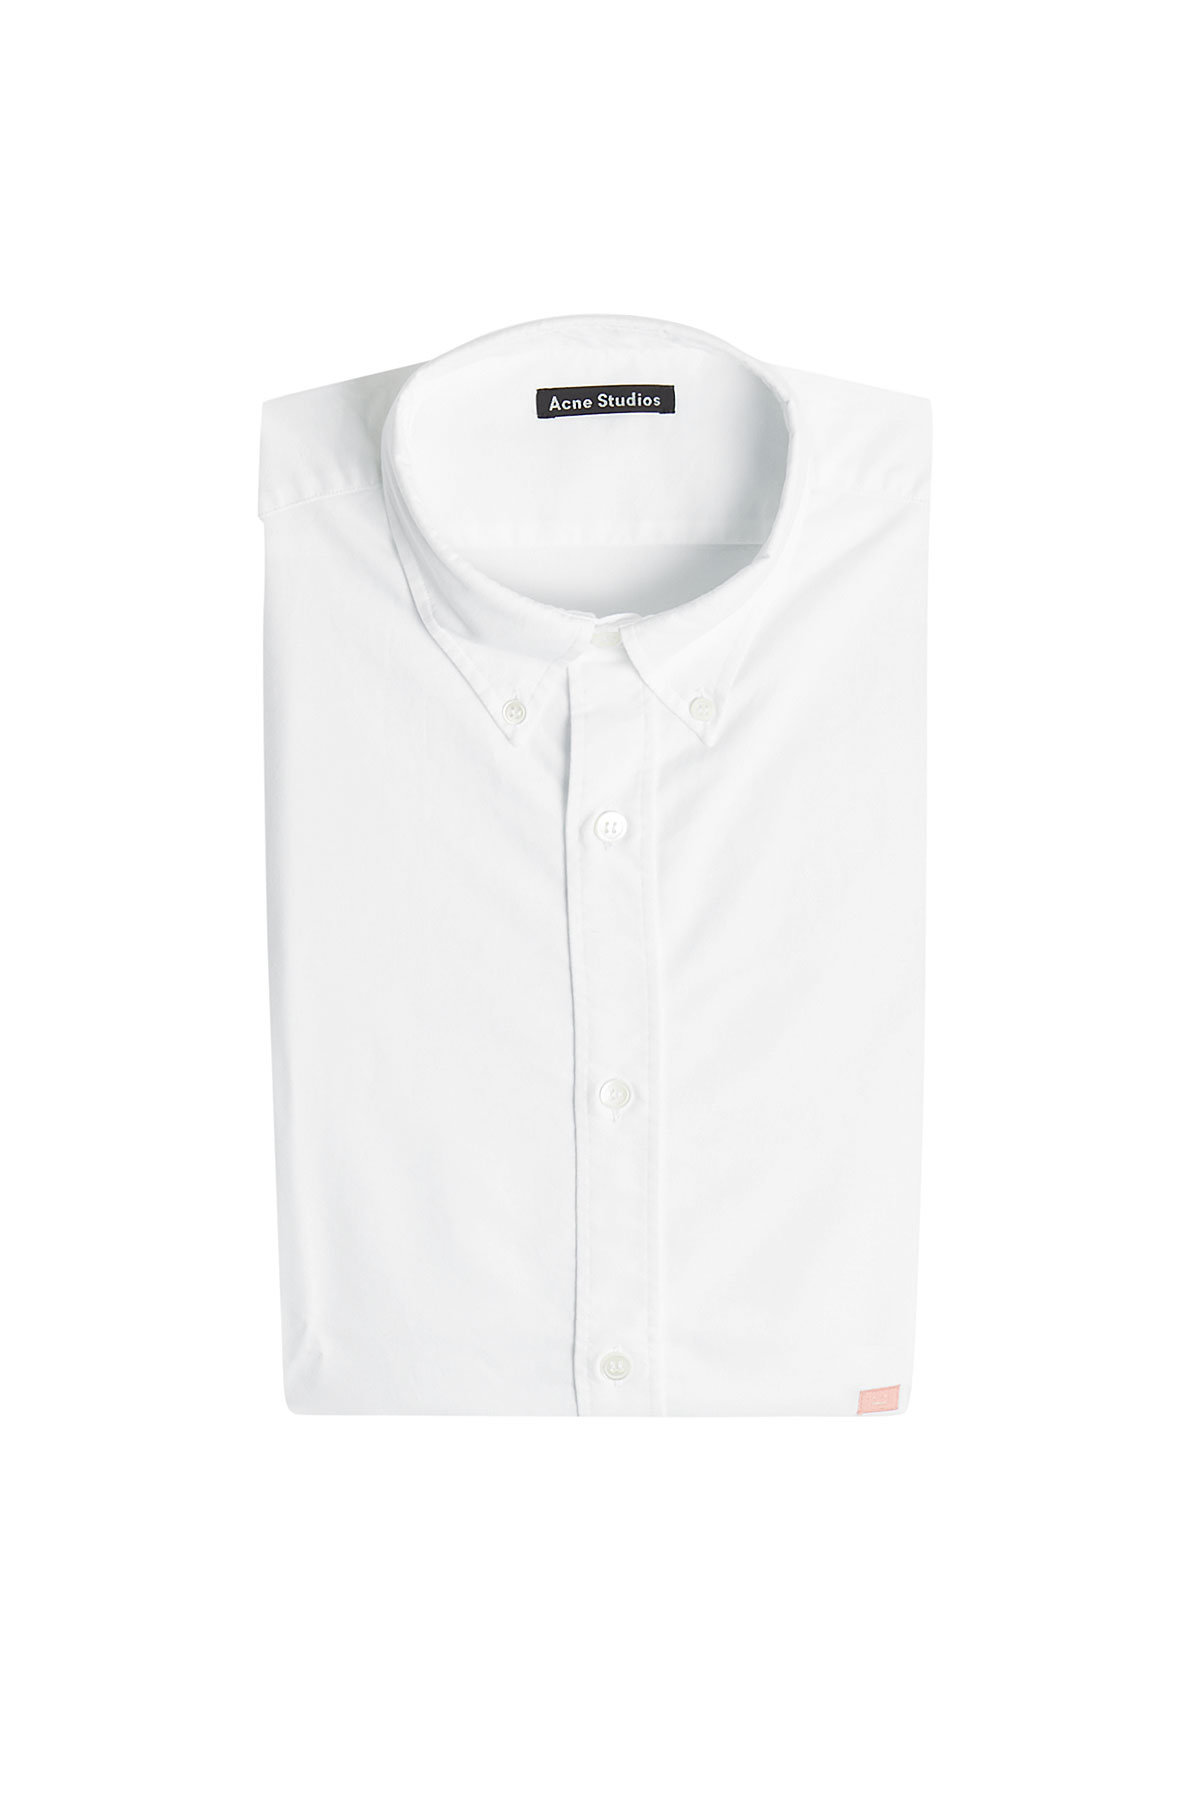 Ohio Face Cotton Shirt | ACNE STUDIOS